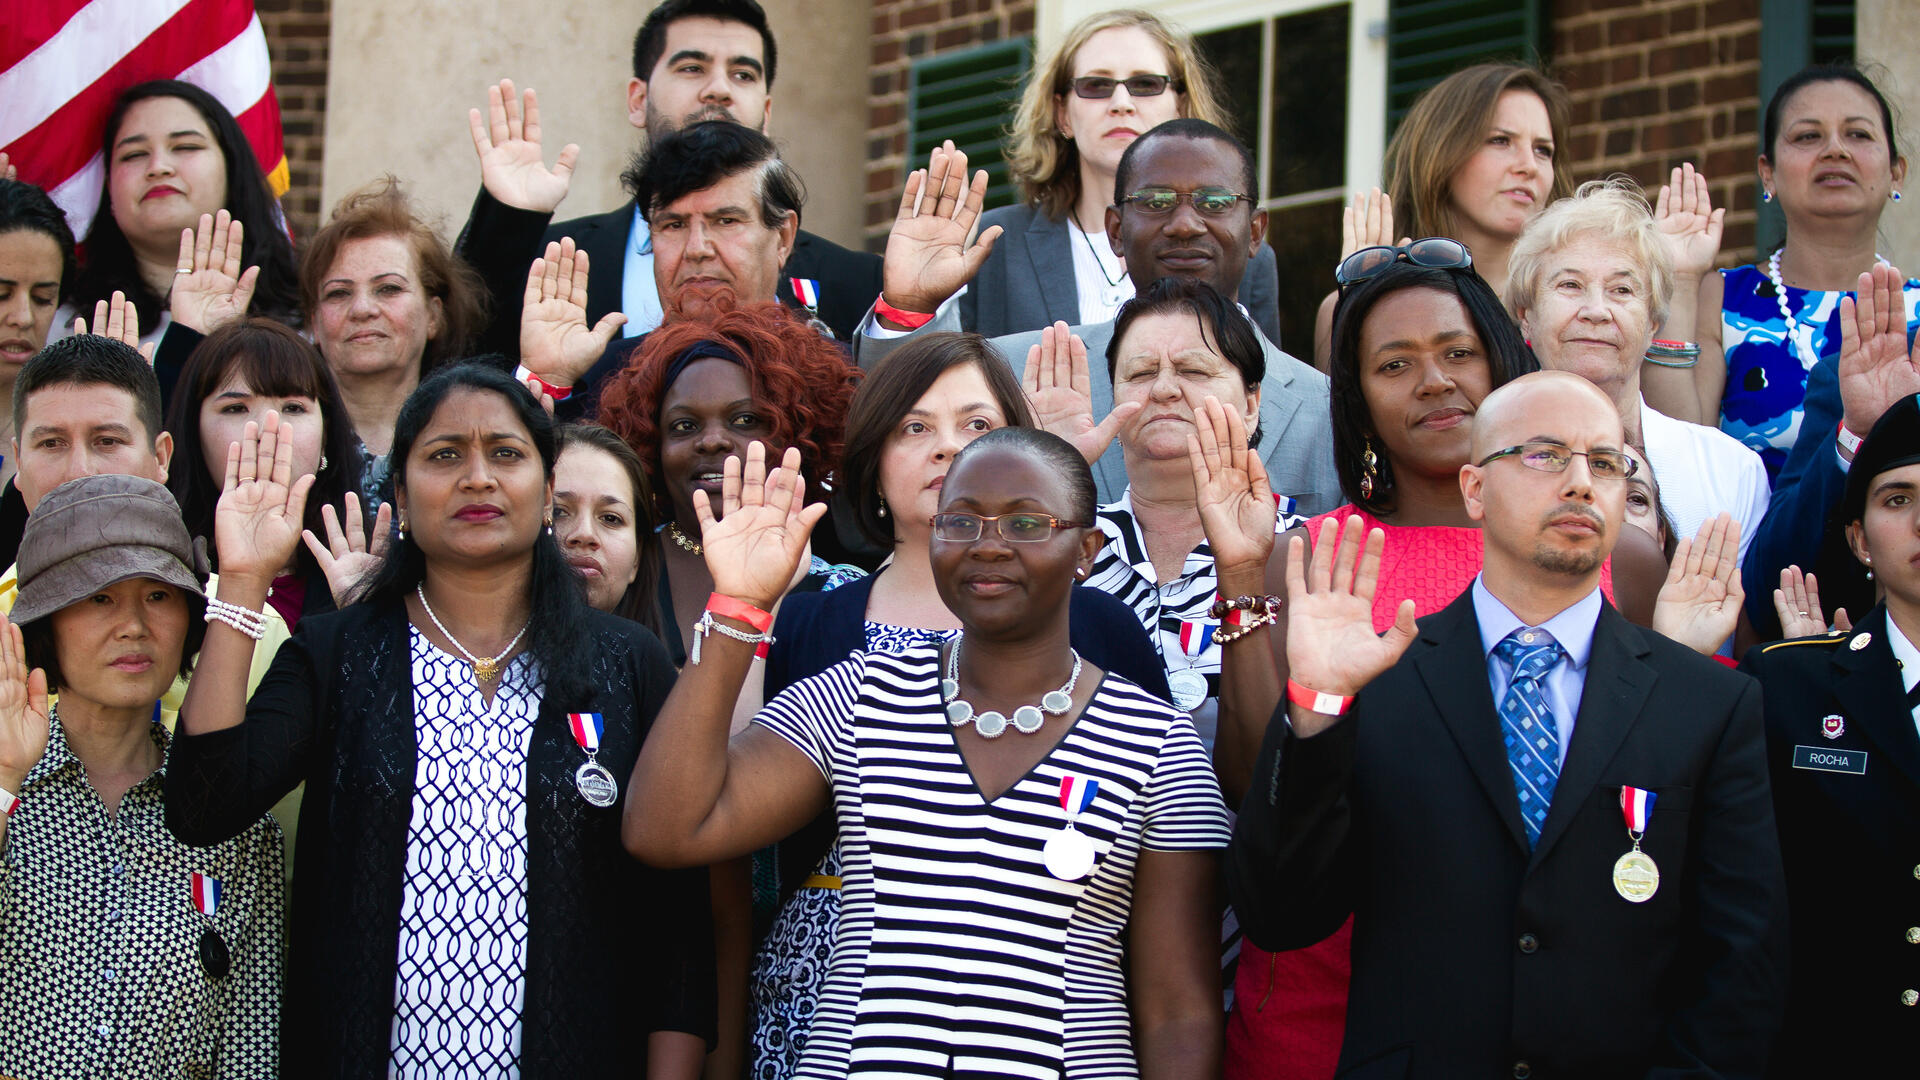 New U.S. citizens taking an oath